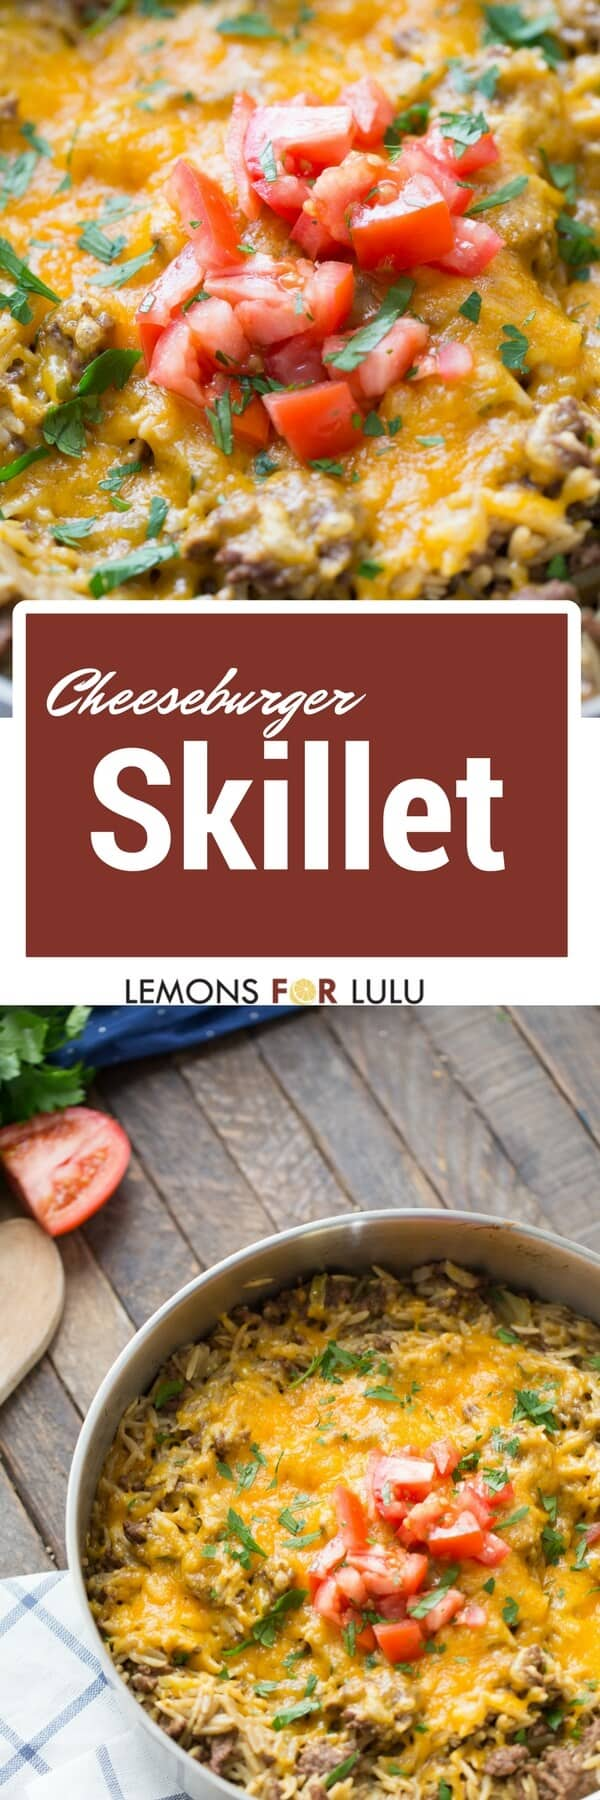 Not sure what to feed the family? Problem solved! This cheeseburger skillet recipe is a family favorite and it only takes about 30 minutes to prepare!